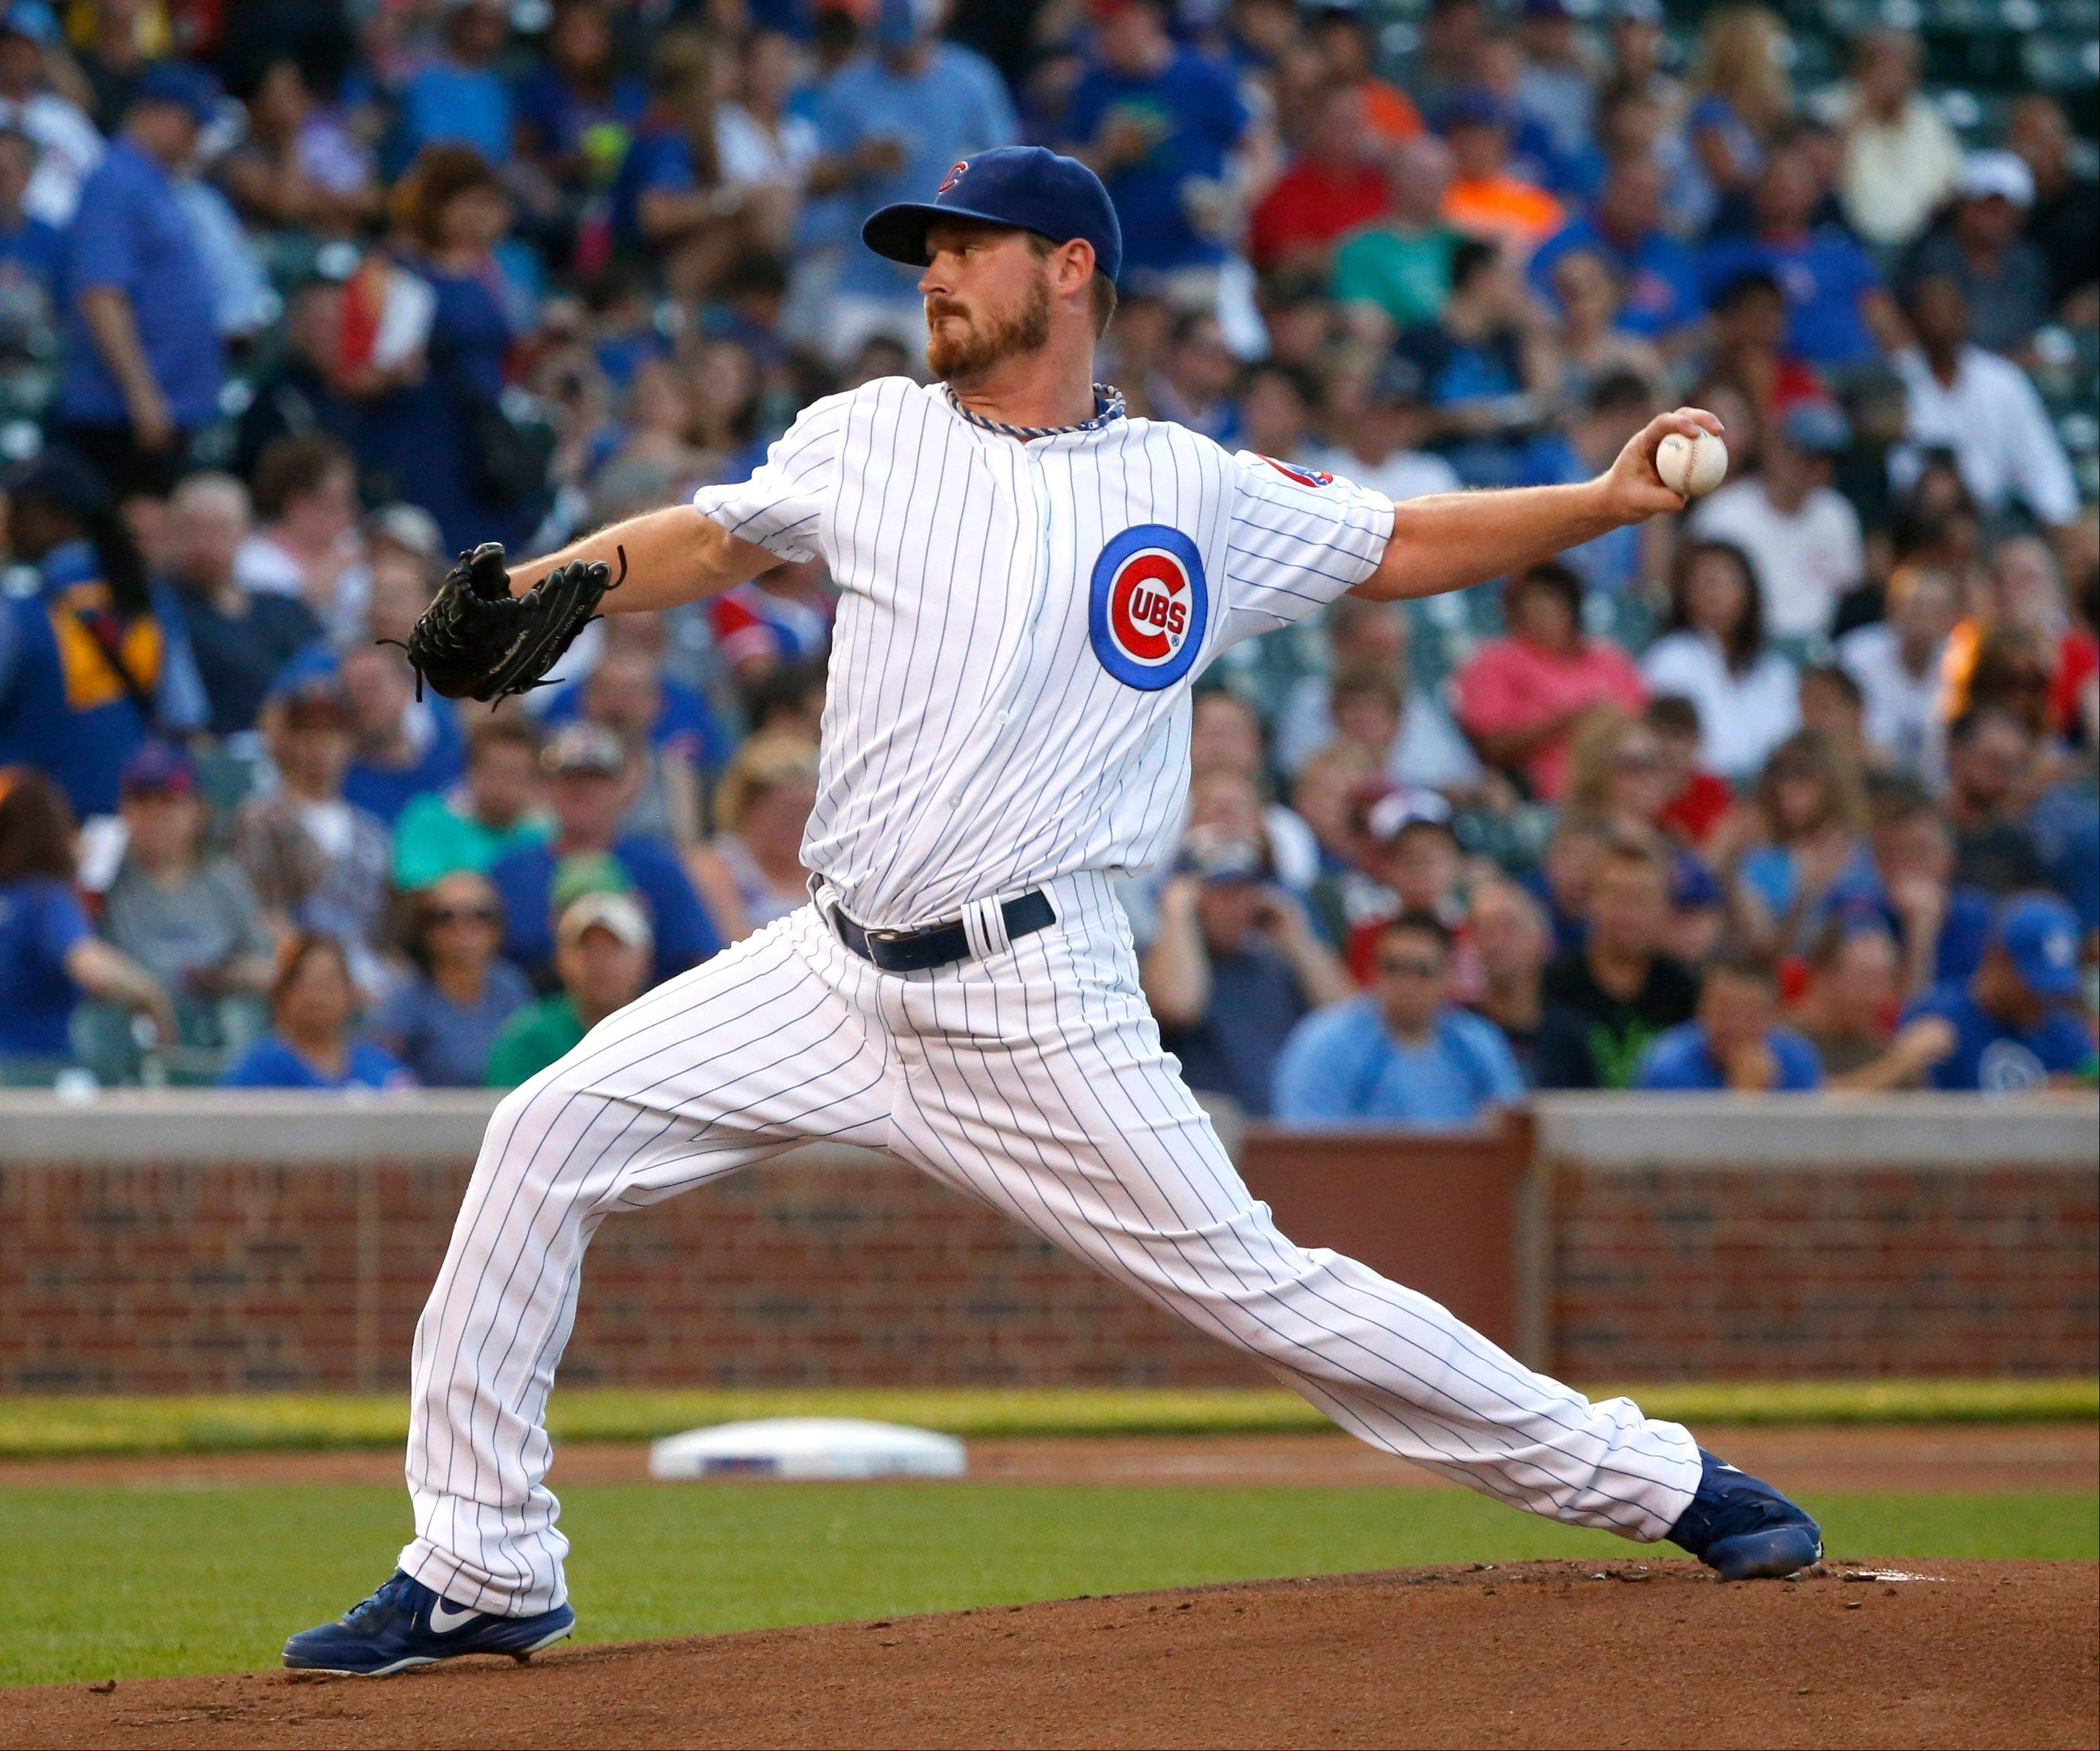 Cubs pitcher Travis Wood turned in his 17th quality start with Tuesday night�s victory over the Angels at Wrigley Field.